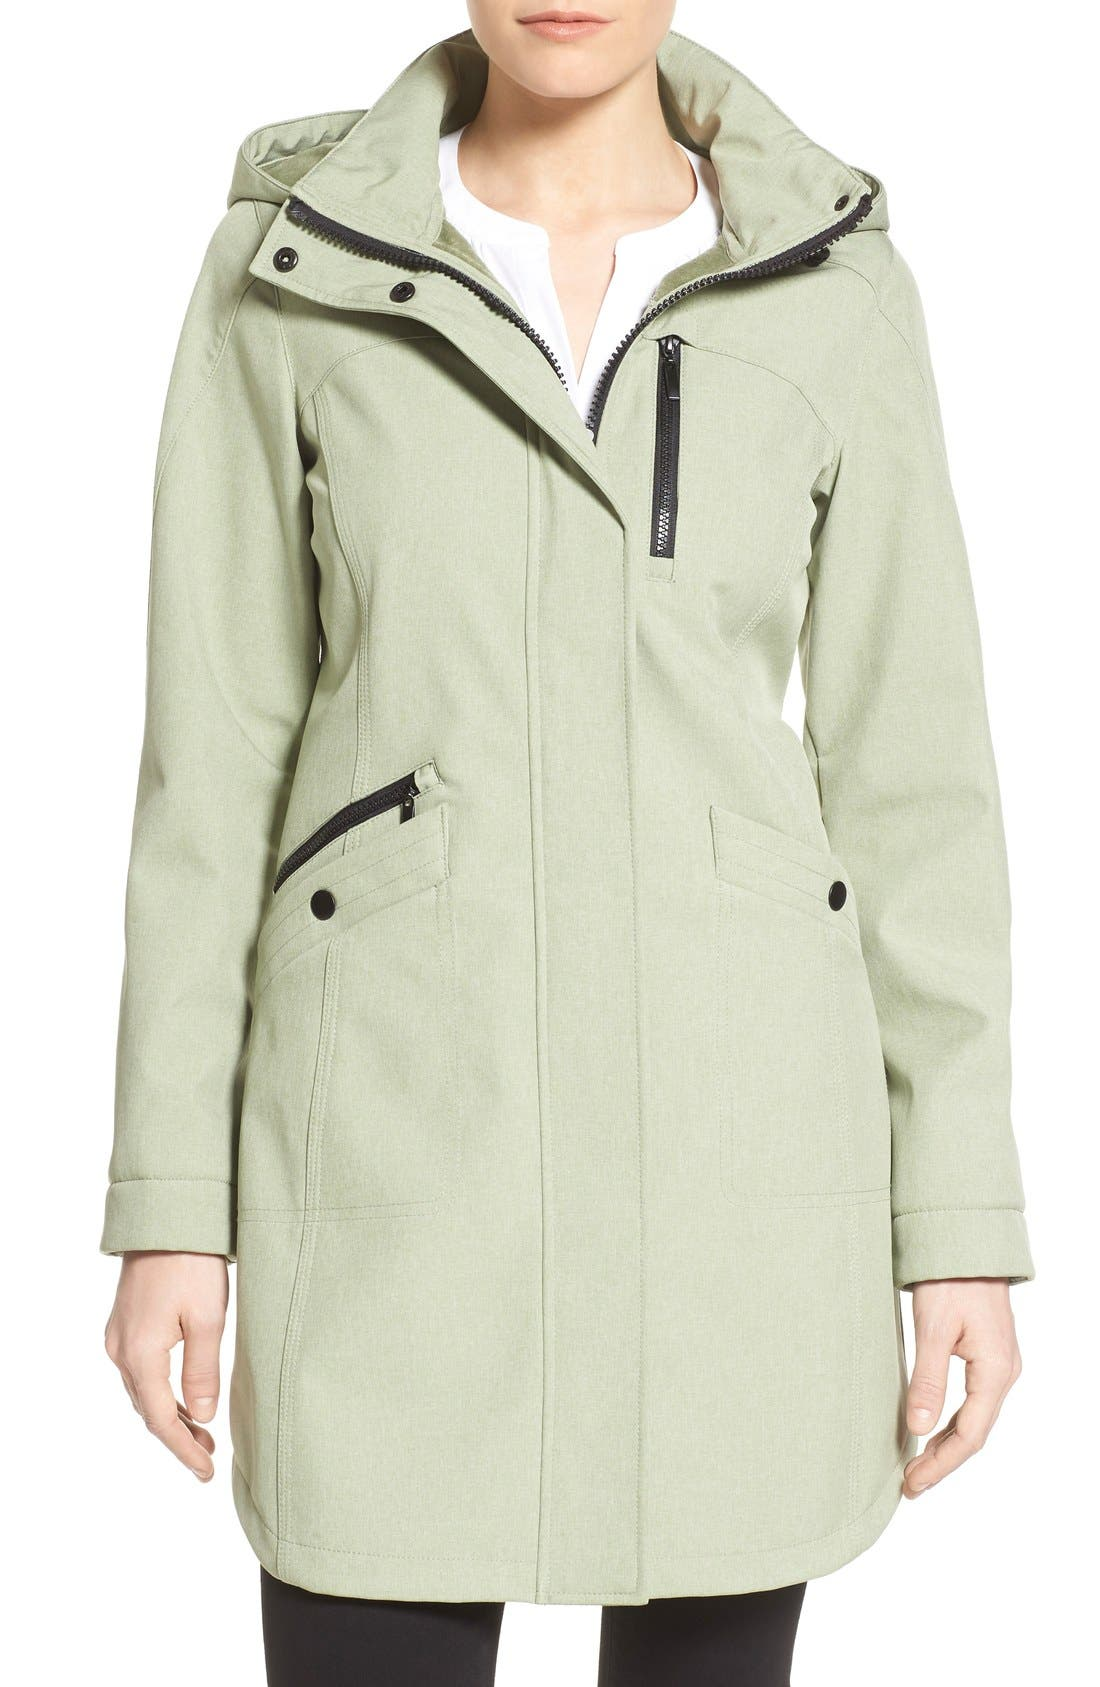 Crossdye Hooded Soft Shell Jacket,                         Main,                         color,